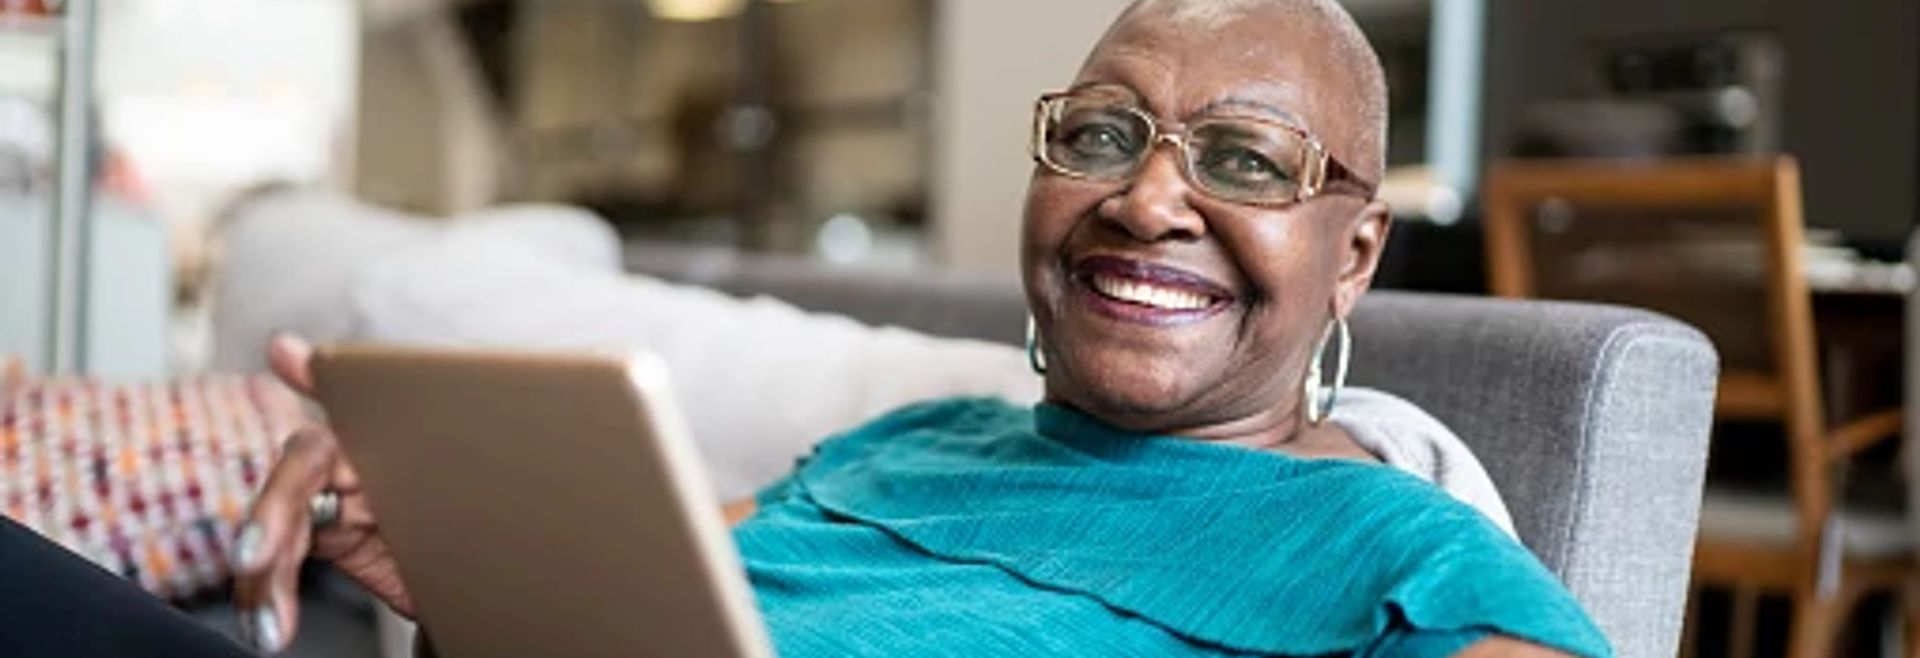 Woman sitting on a couch with a tablet